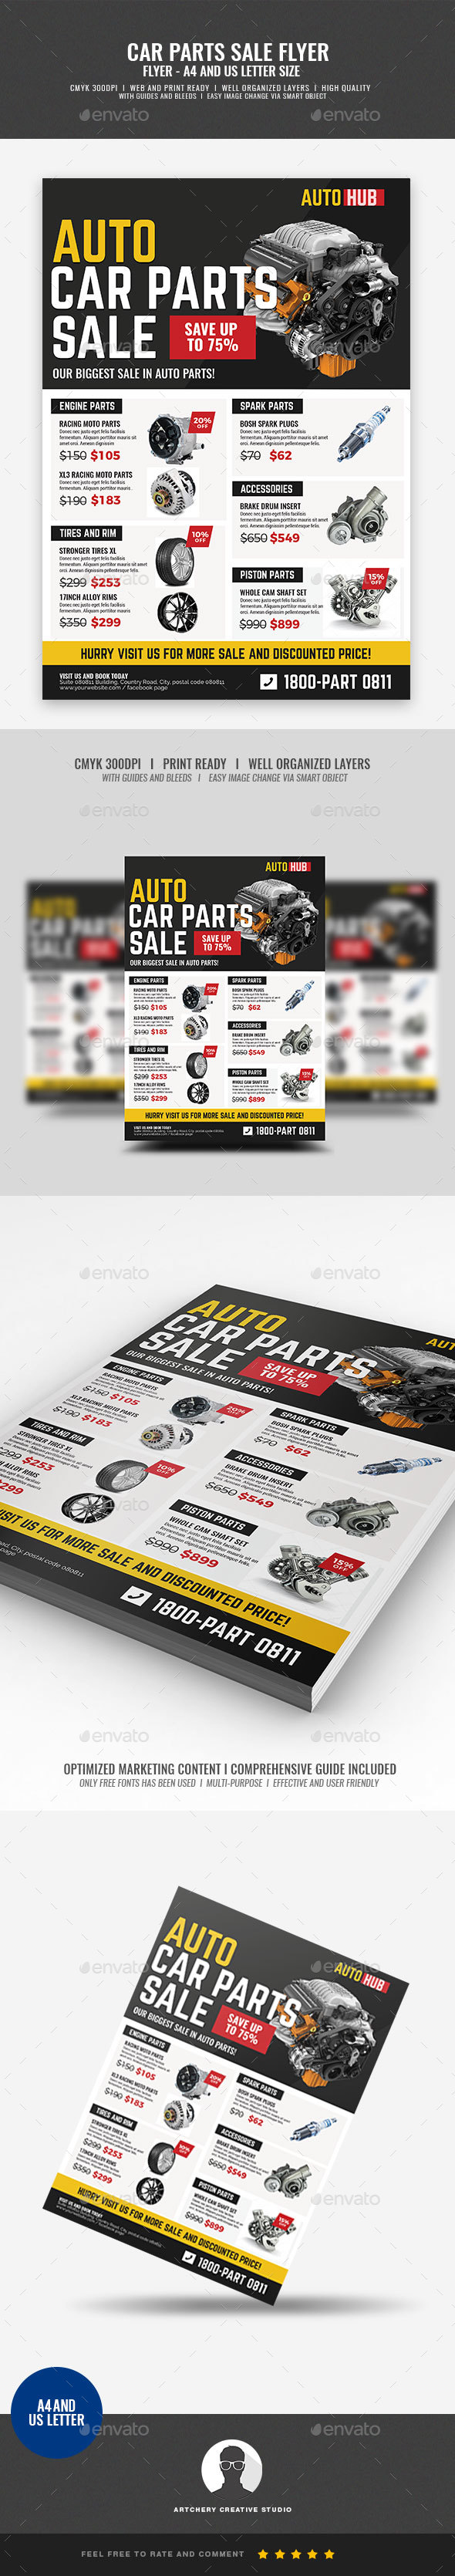 Car Parts Shop Promo Sale Flyer - Corporate Flyers